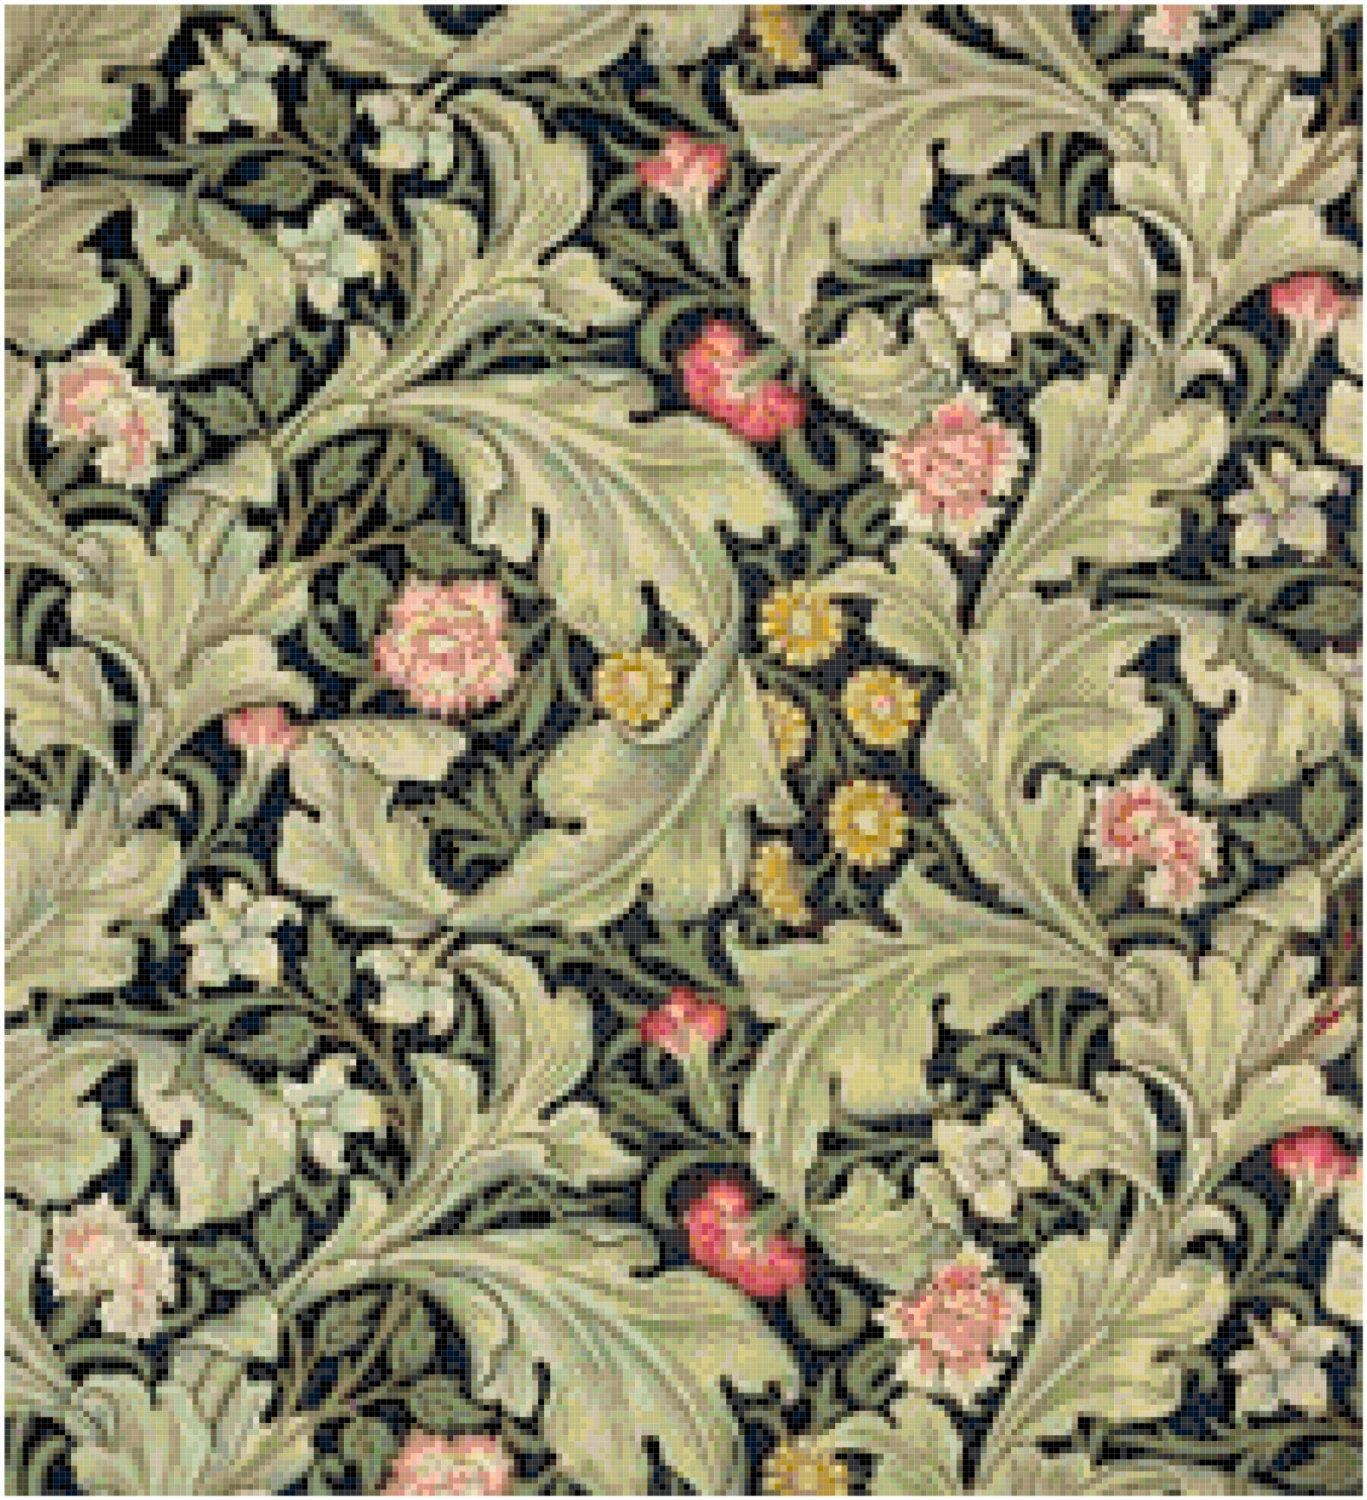 William morris flowers and foliage design counted cross for Arts and crafts style prints